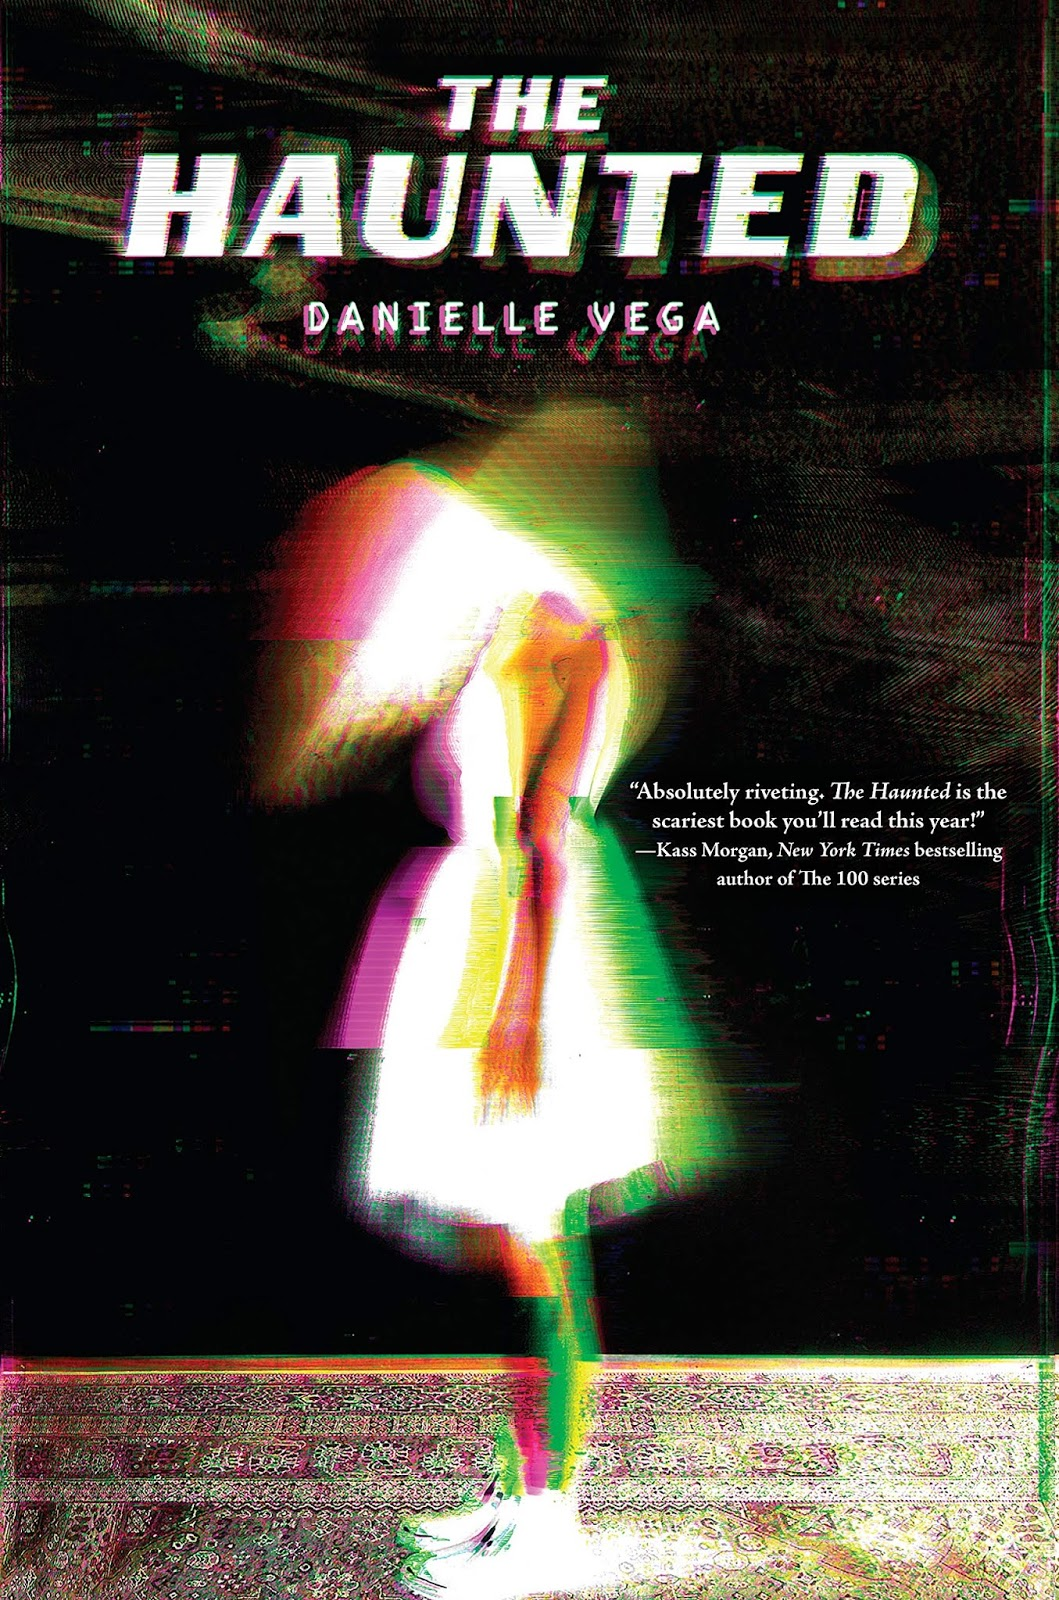 The Haunted by Danielle Vega | Superior Young Adult Fiction | Book Review